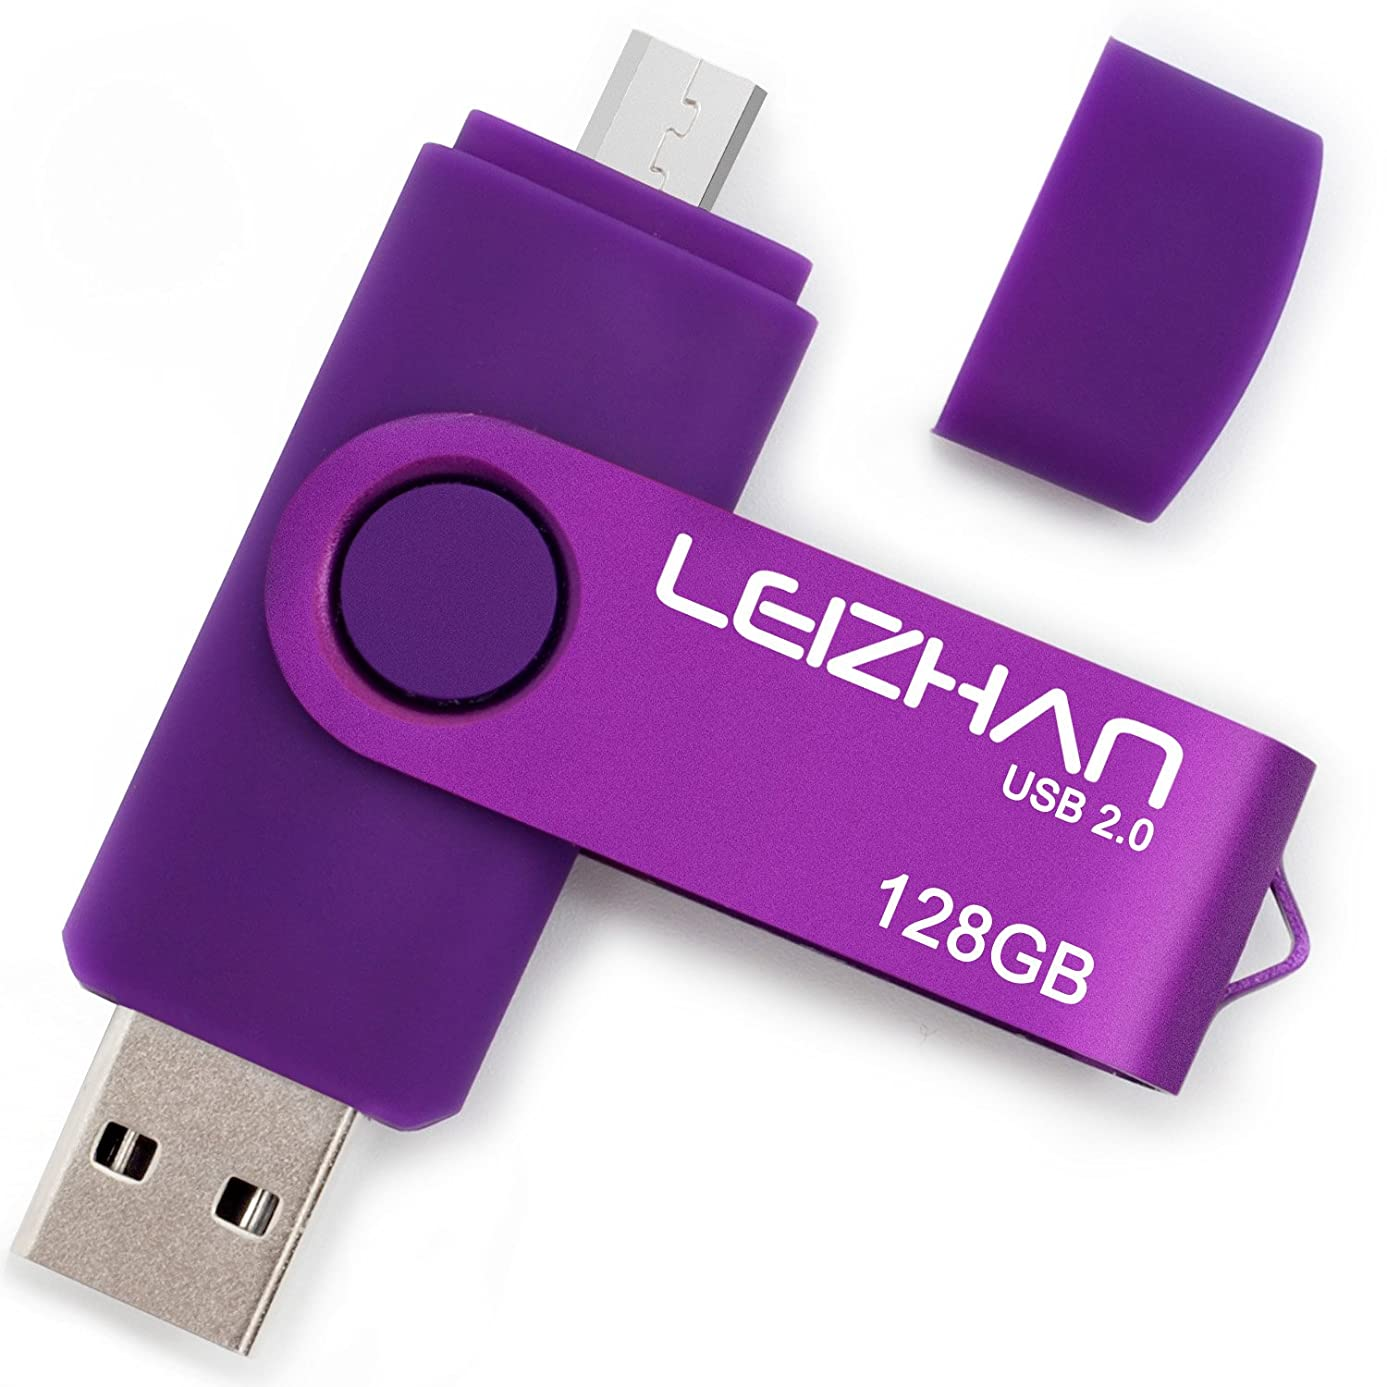 LEIZHAN Flash Drive 128GB Micro Pen Drive Purple Android Phone Pendrive USB 2.0 Memory Stick for Samsung Galaxy, Xiaomi,LG,Sony, One-Plus,HTC, Meizu